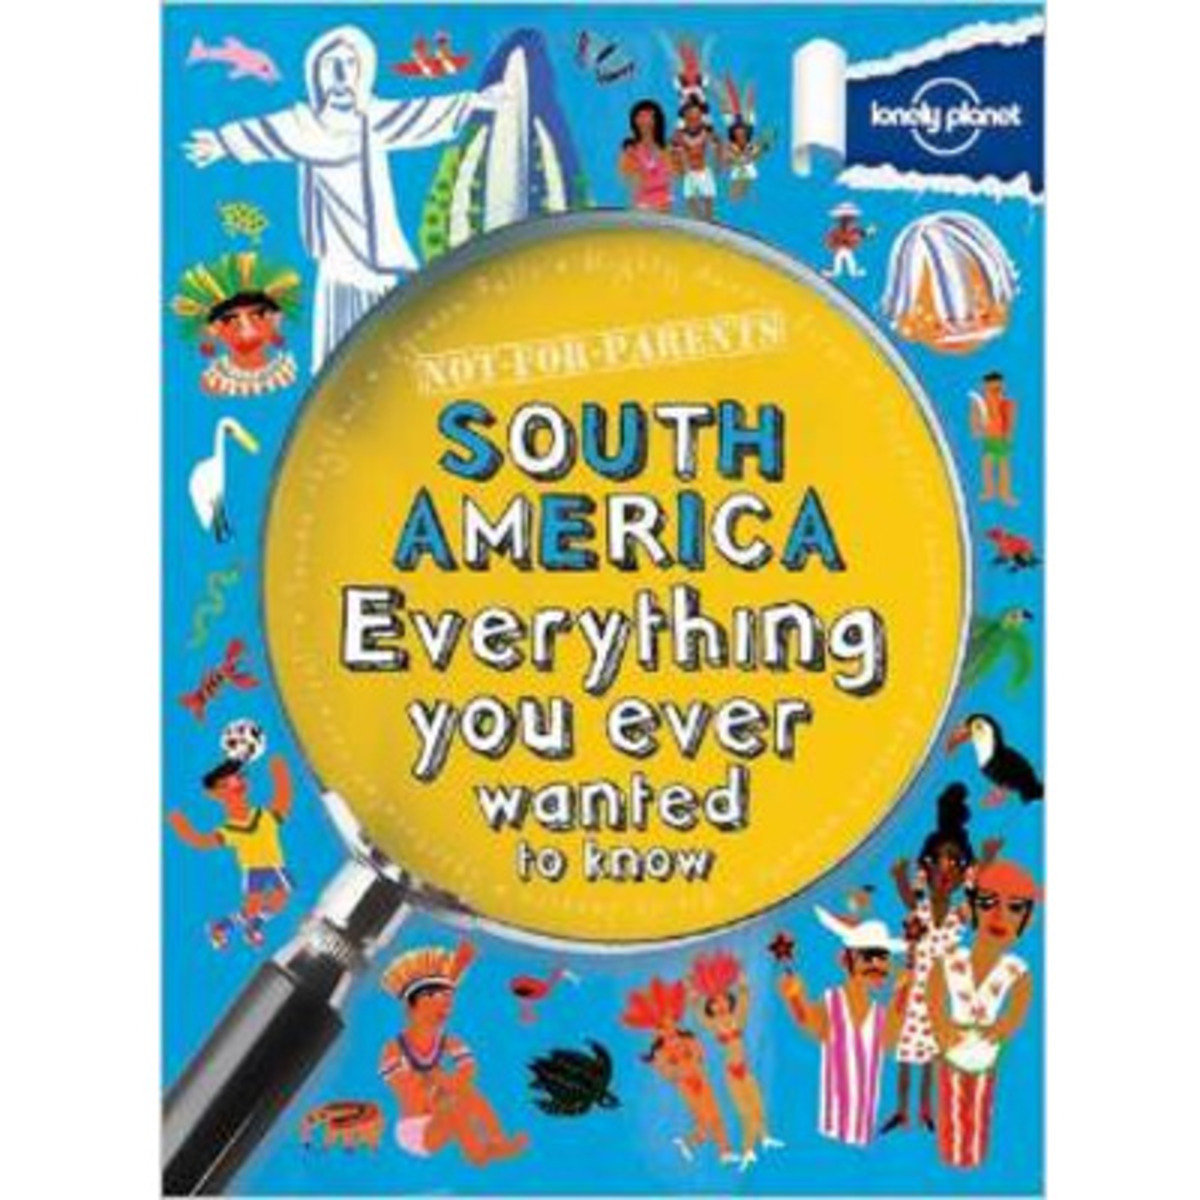 NOT FOR PARENTS SOUTH AMERICA: EVERYTHING YOU EVER WANTED TO KNOW 9781743219157